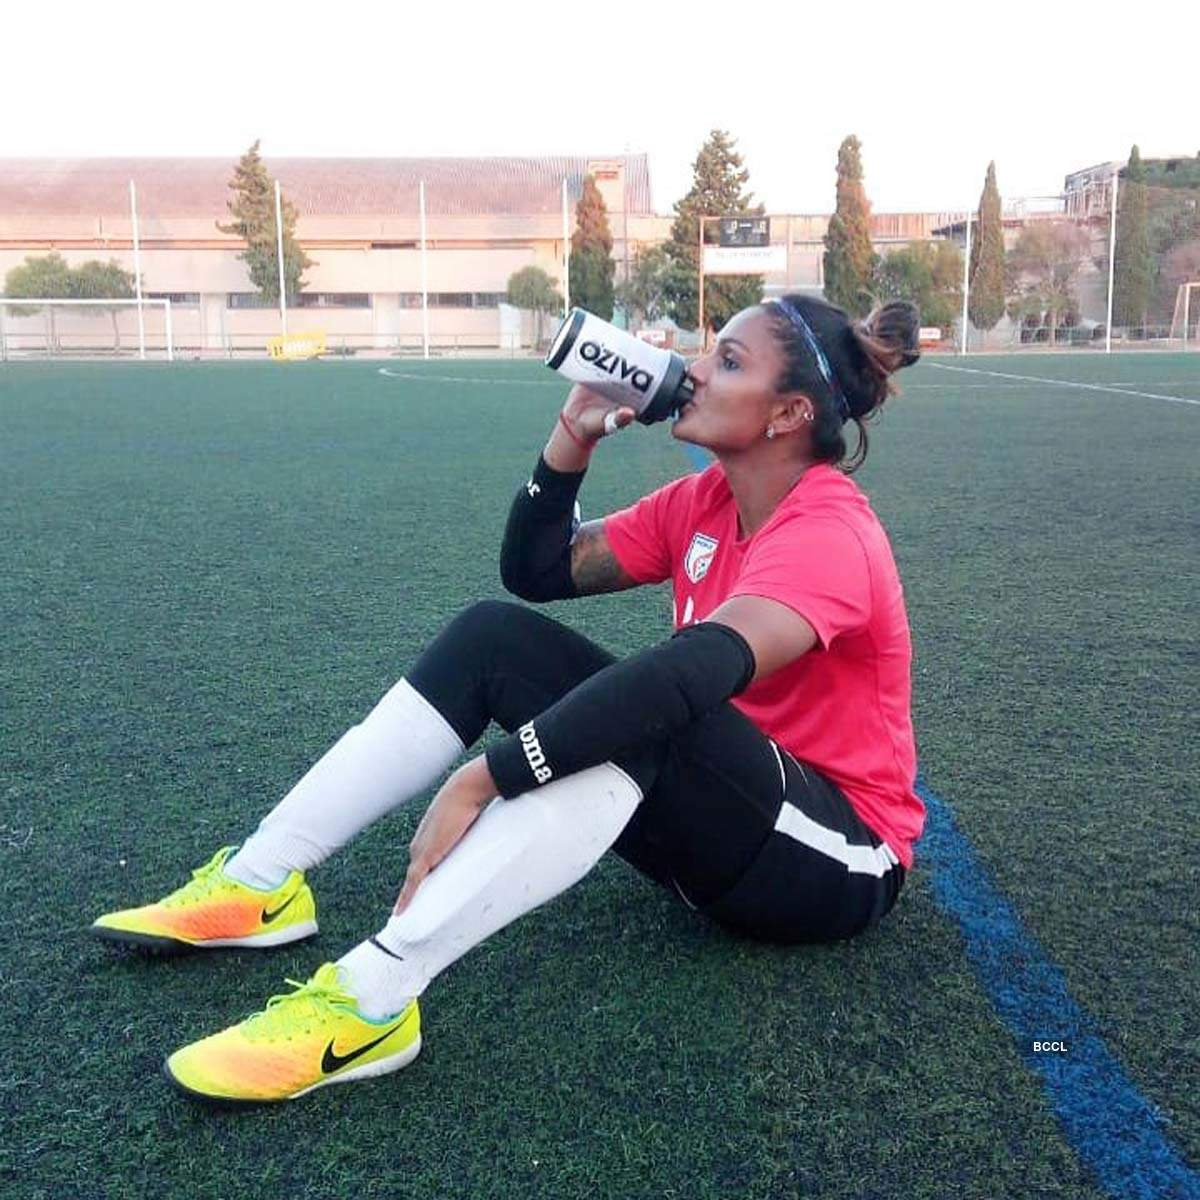 Footballer Aditi Chauhan didn't let the lockdown affect her workout routine